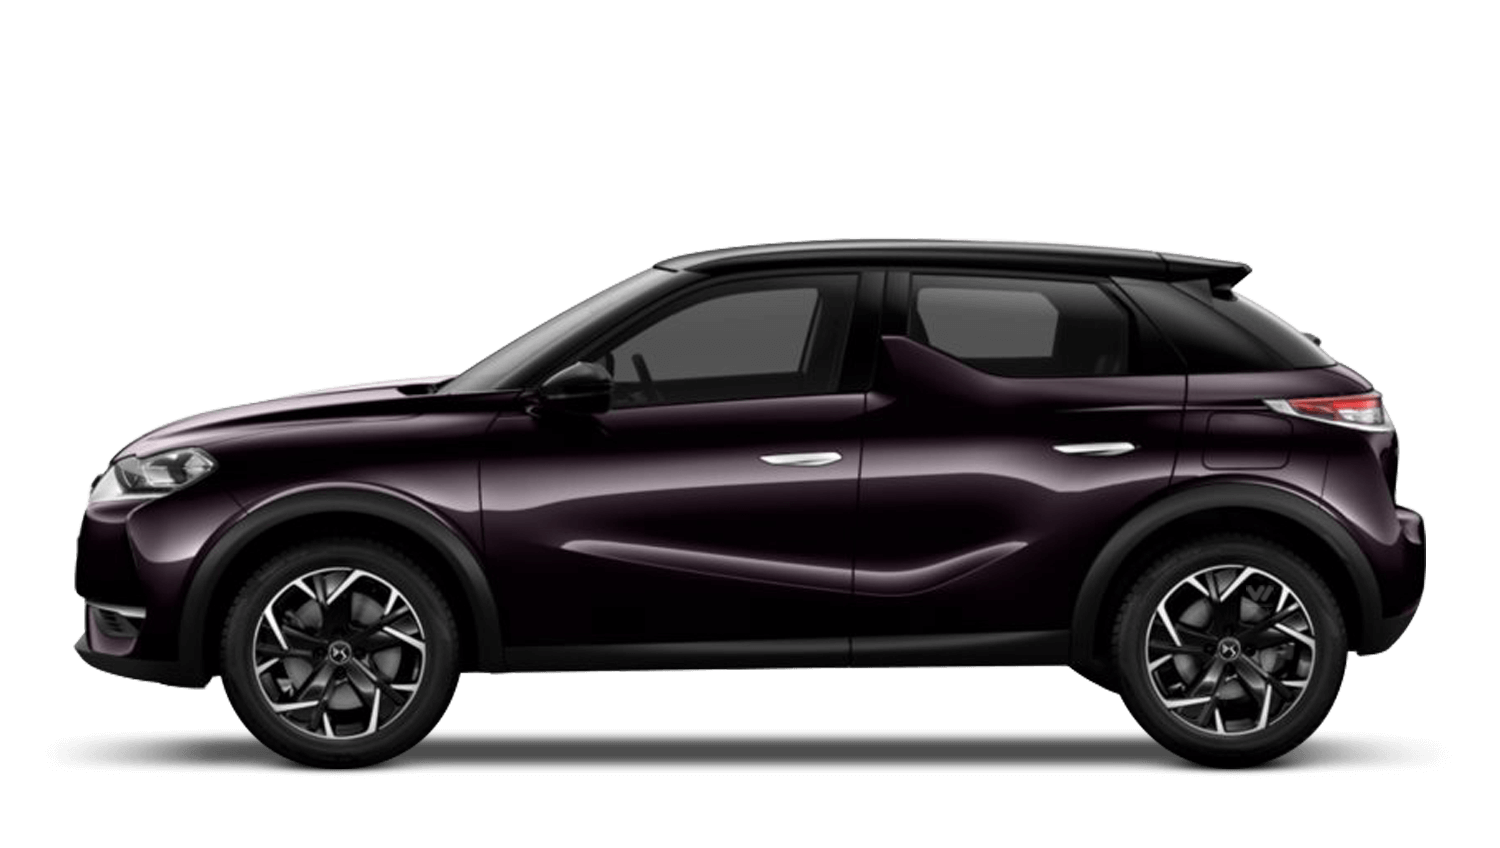 Whisper Purple (Metallic) DS DS 3 Crossback E Tense